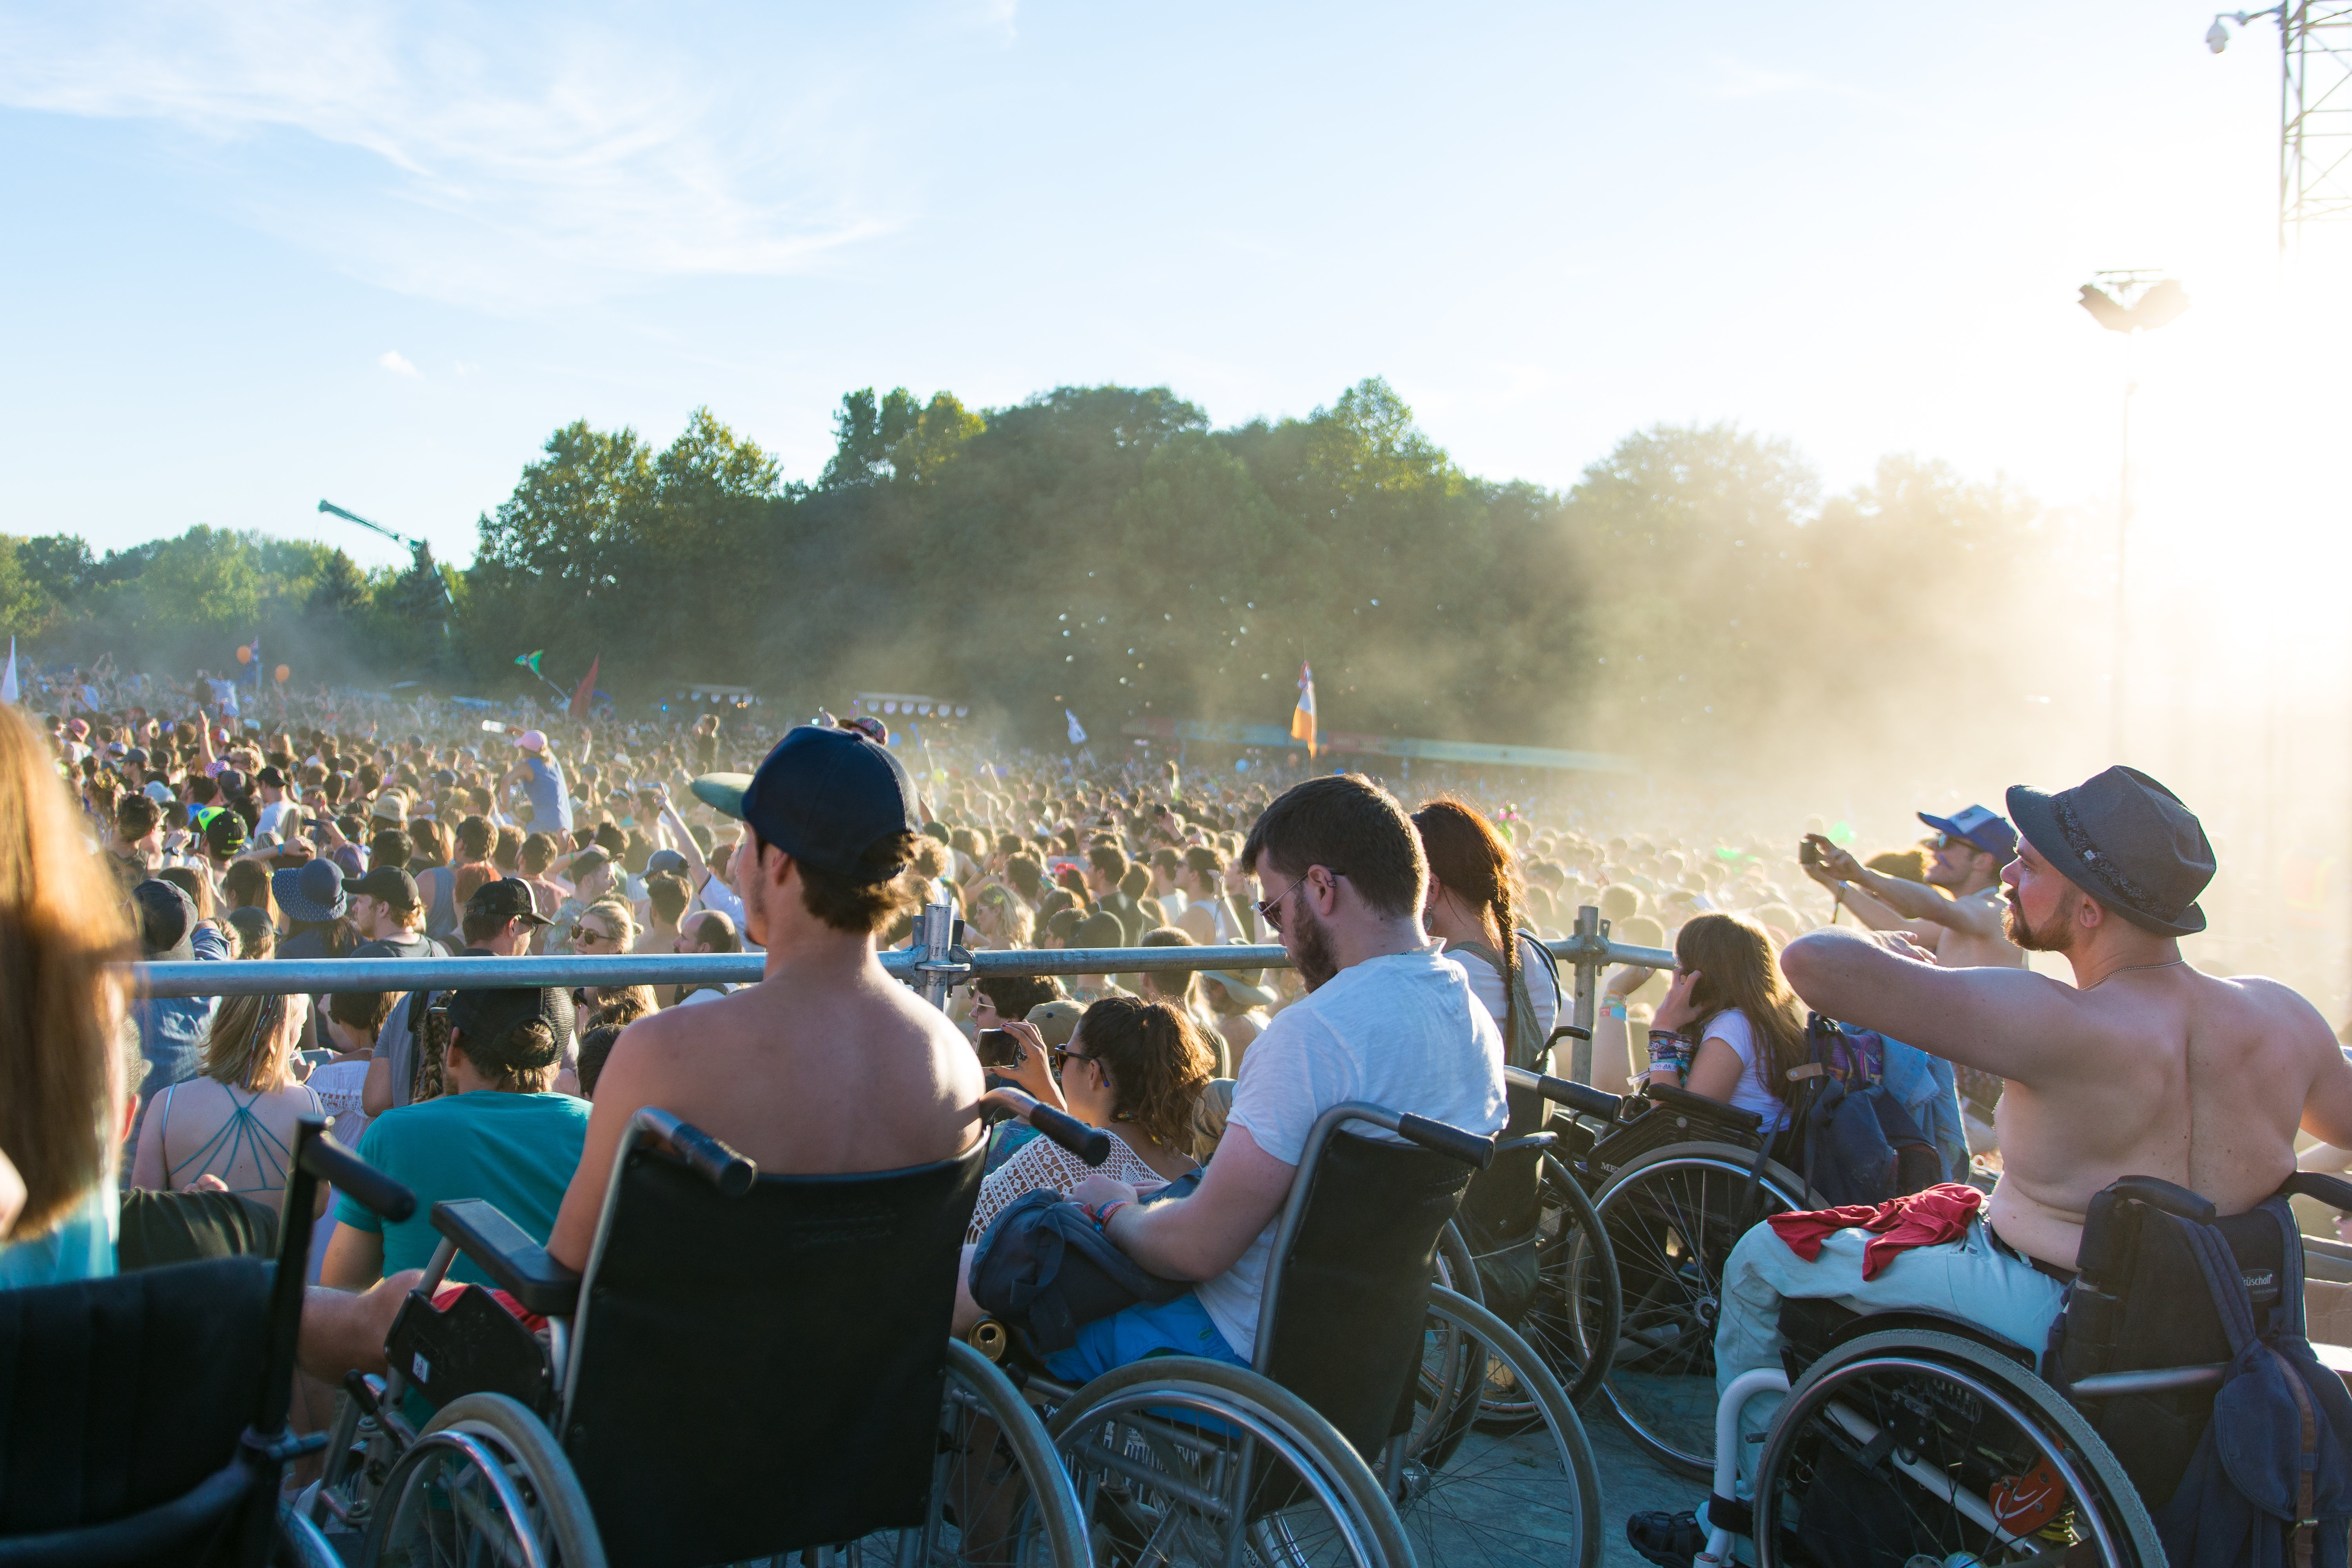 Wheelchair users and the festival crowd looking in the direction of the main stage.